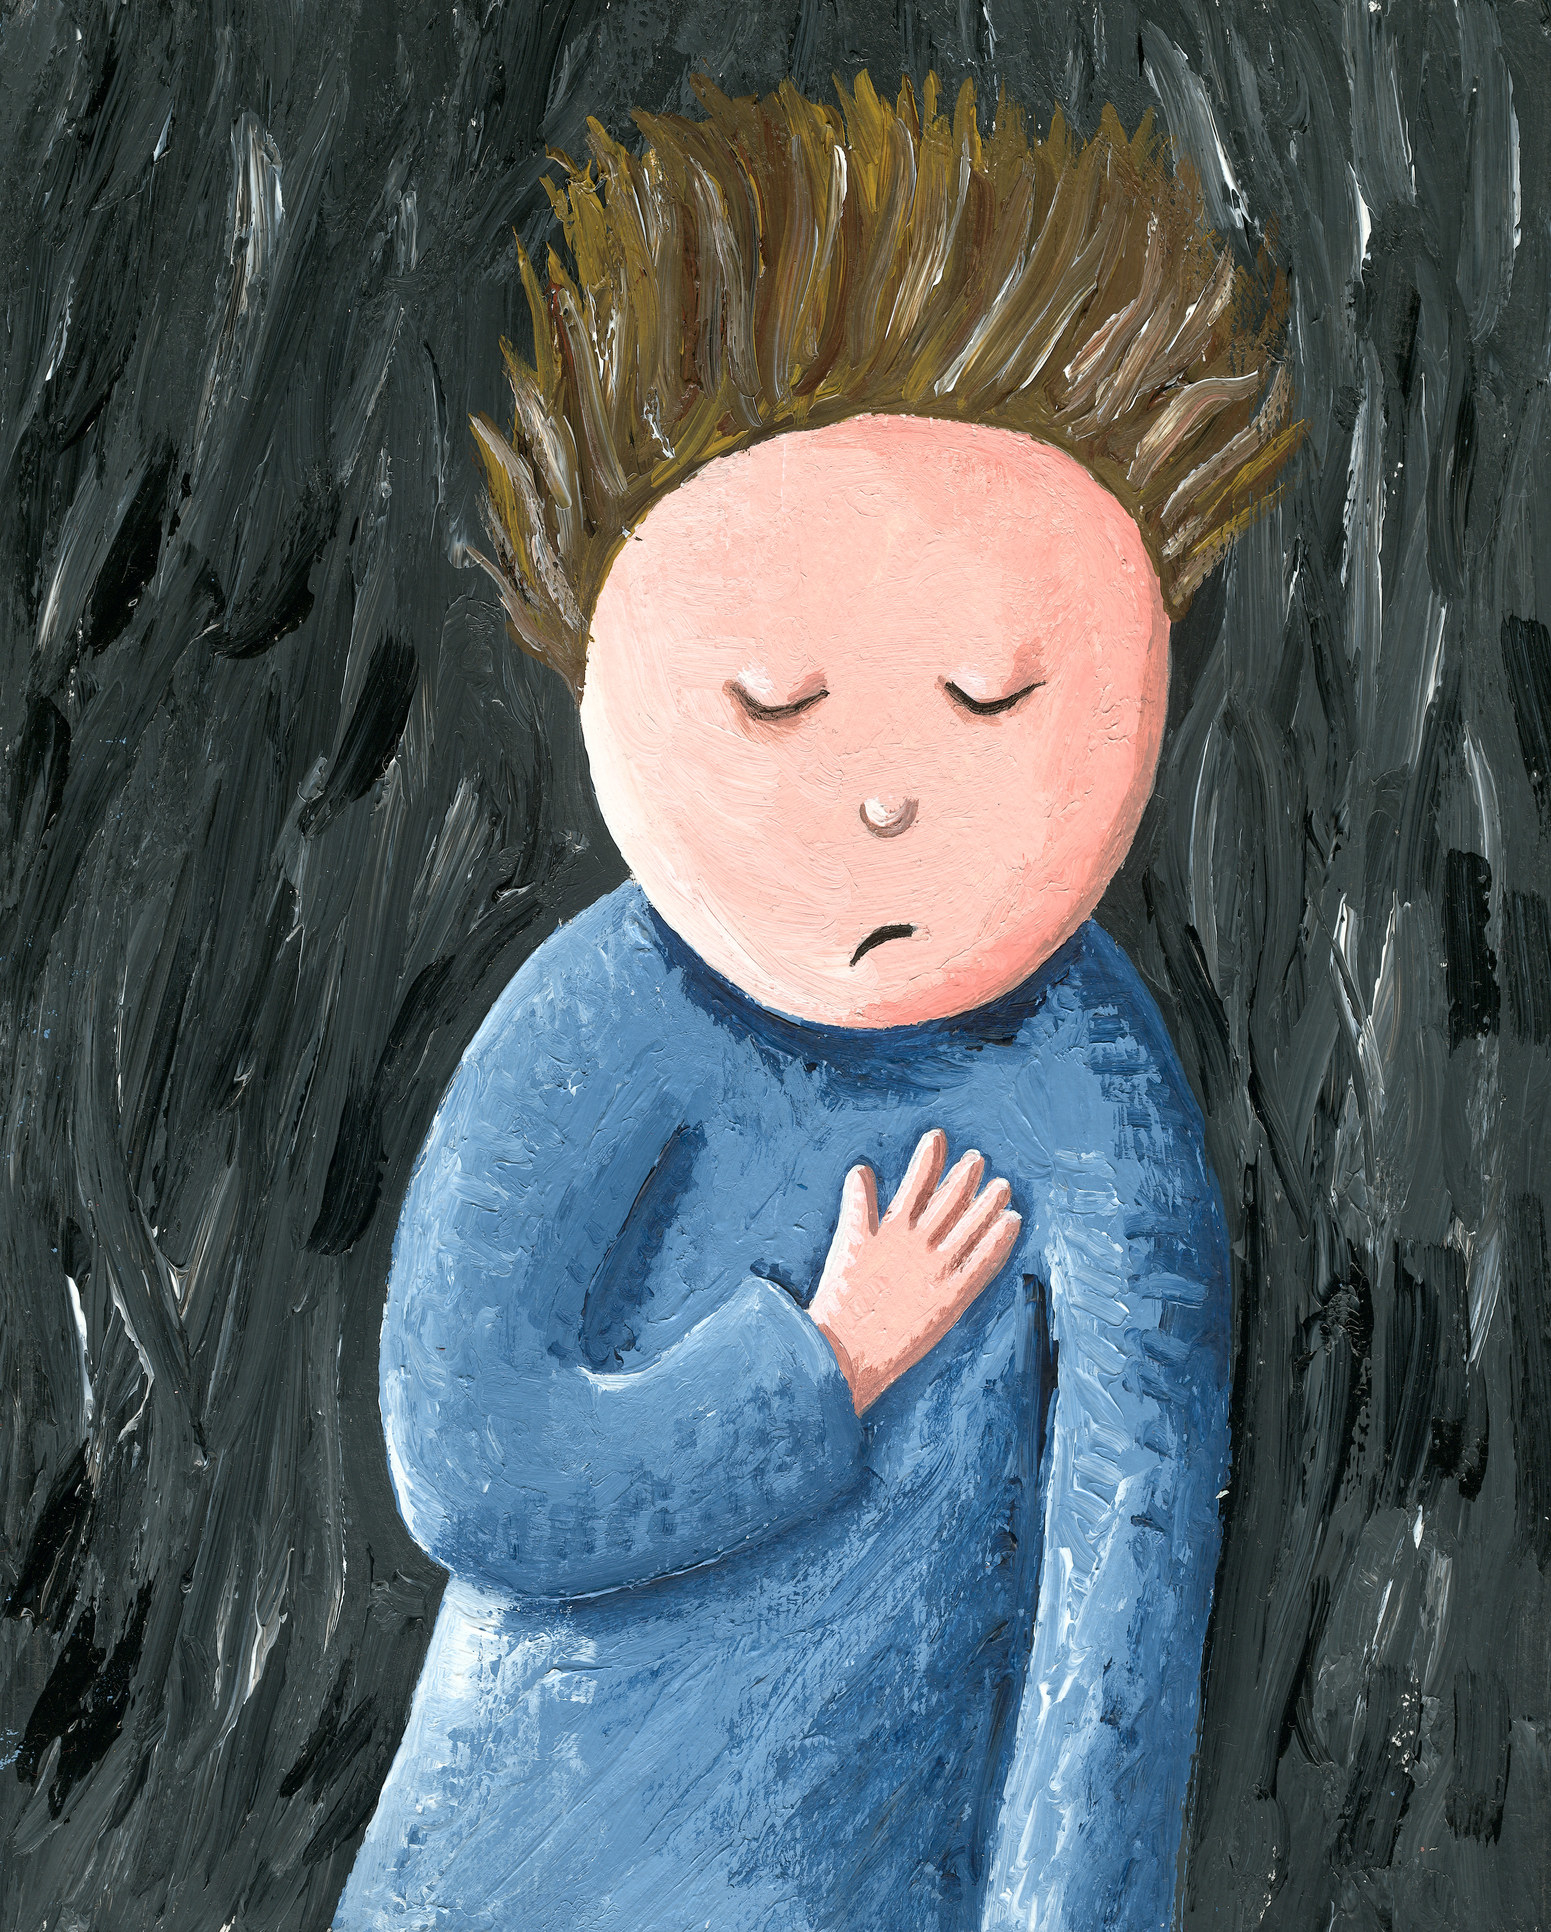 Acrylic illustration of the sad, lonely, unhappy, disappointed child with emotional stress and pain